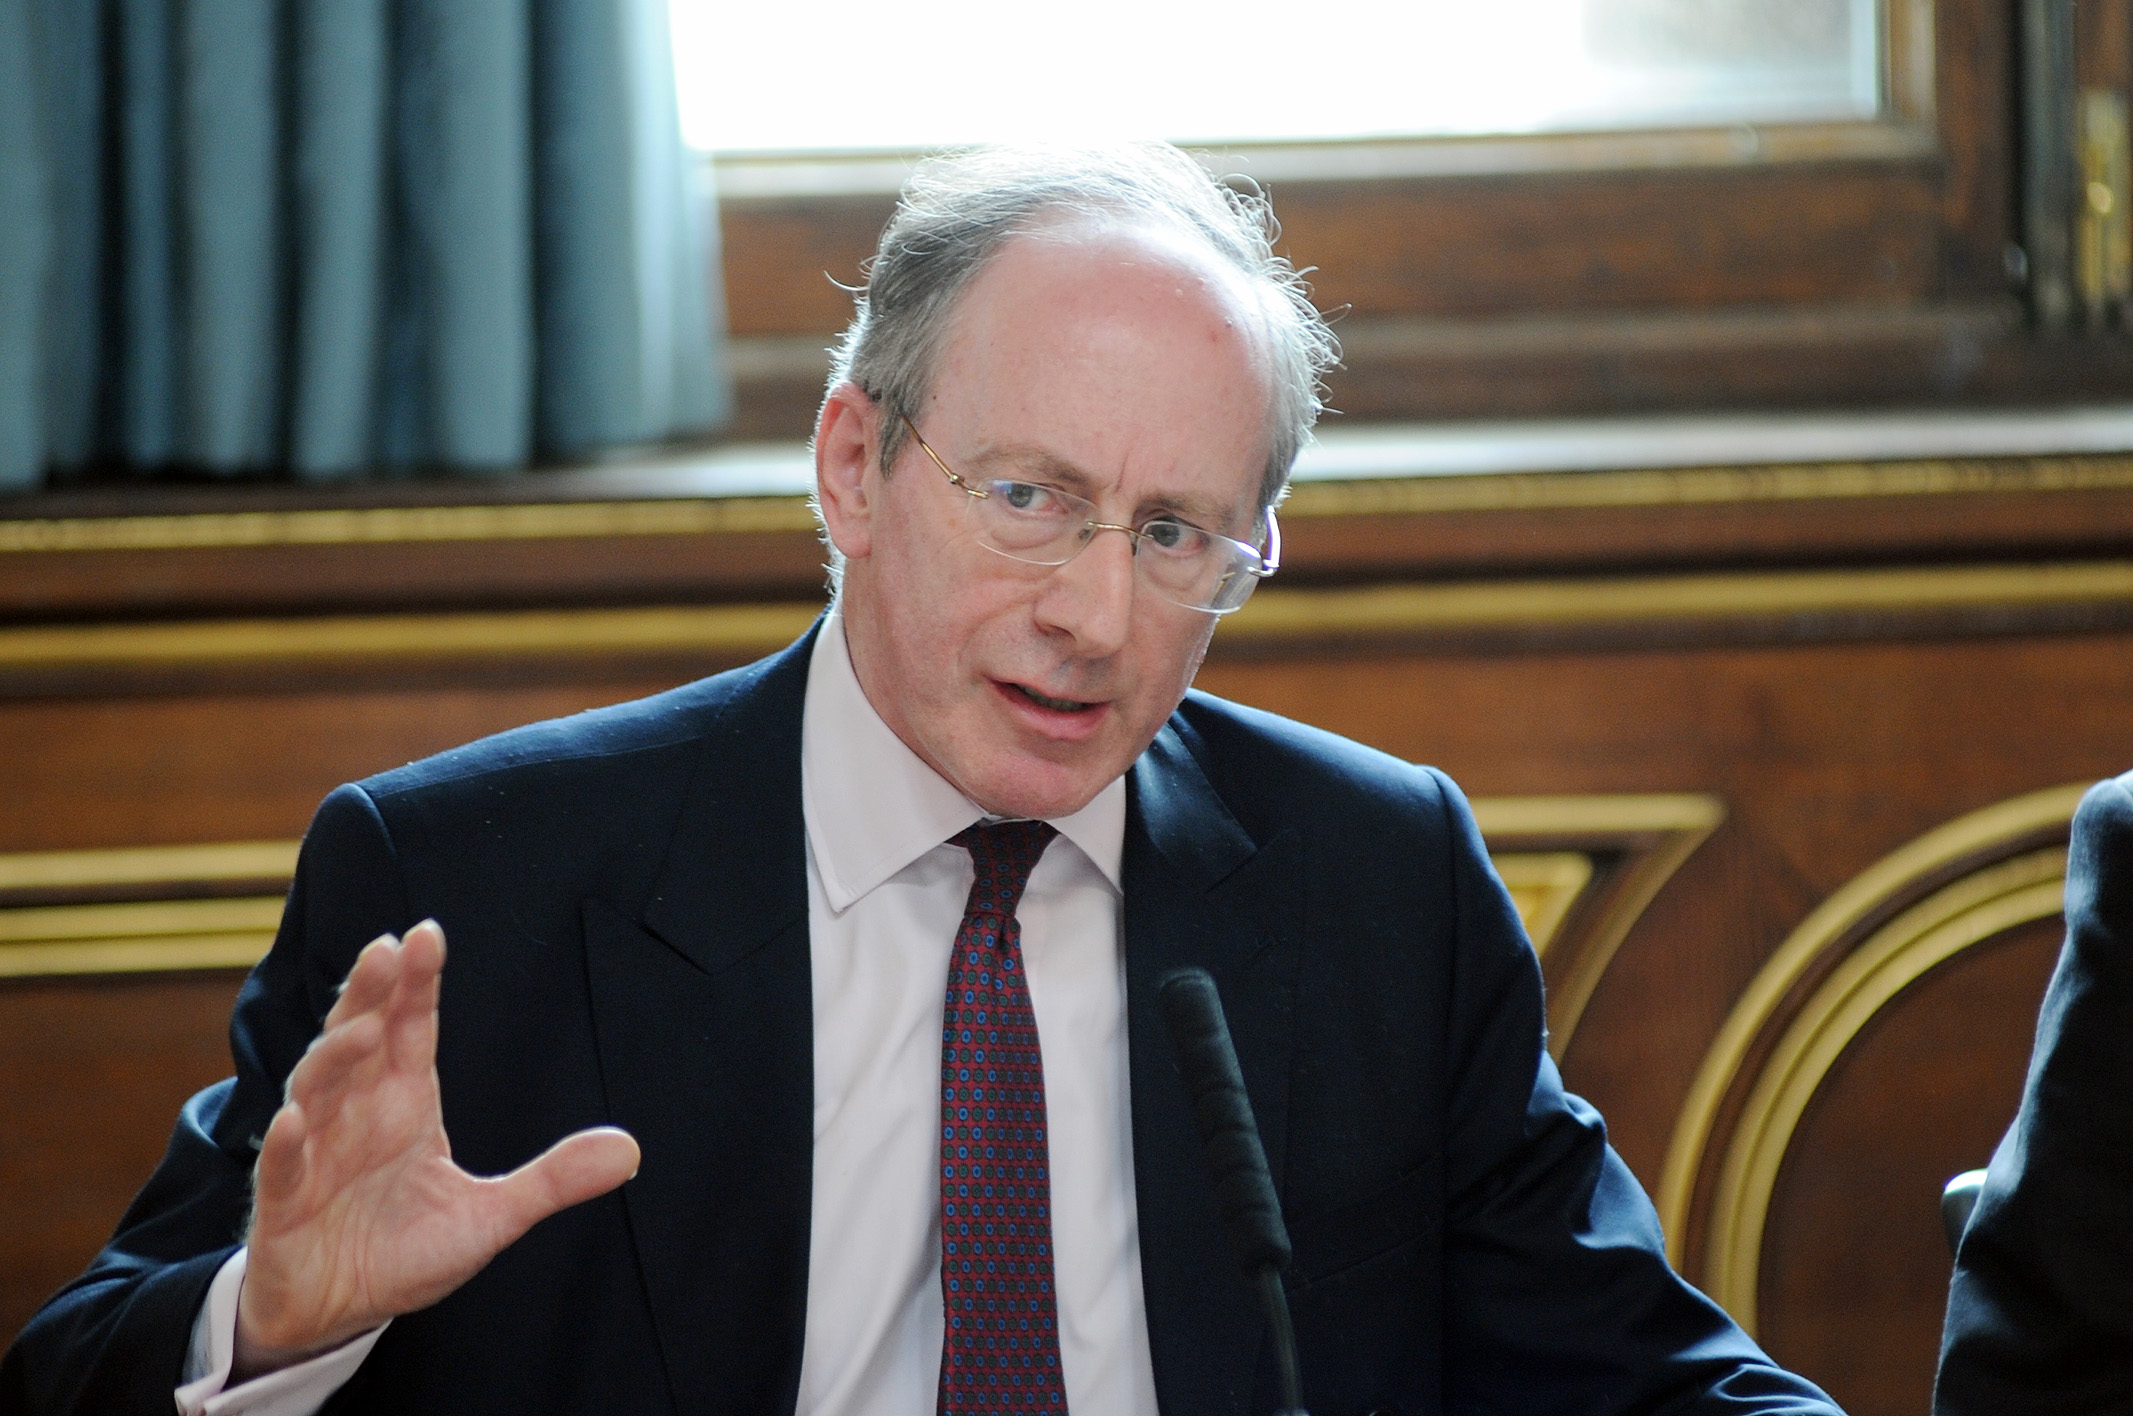 Rifkind's resignation could herald a new era for parliamentary oversight